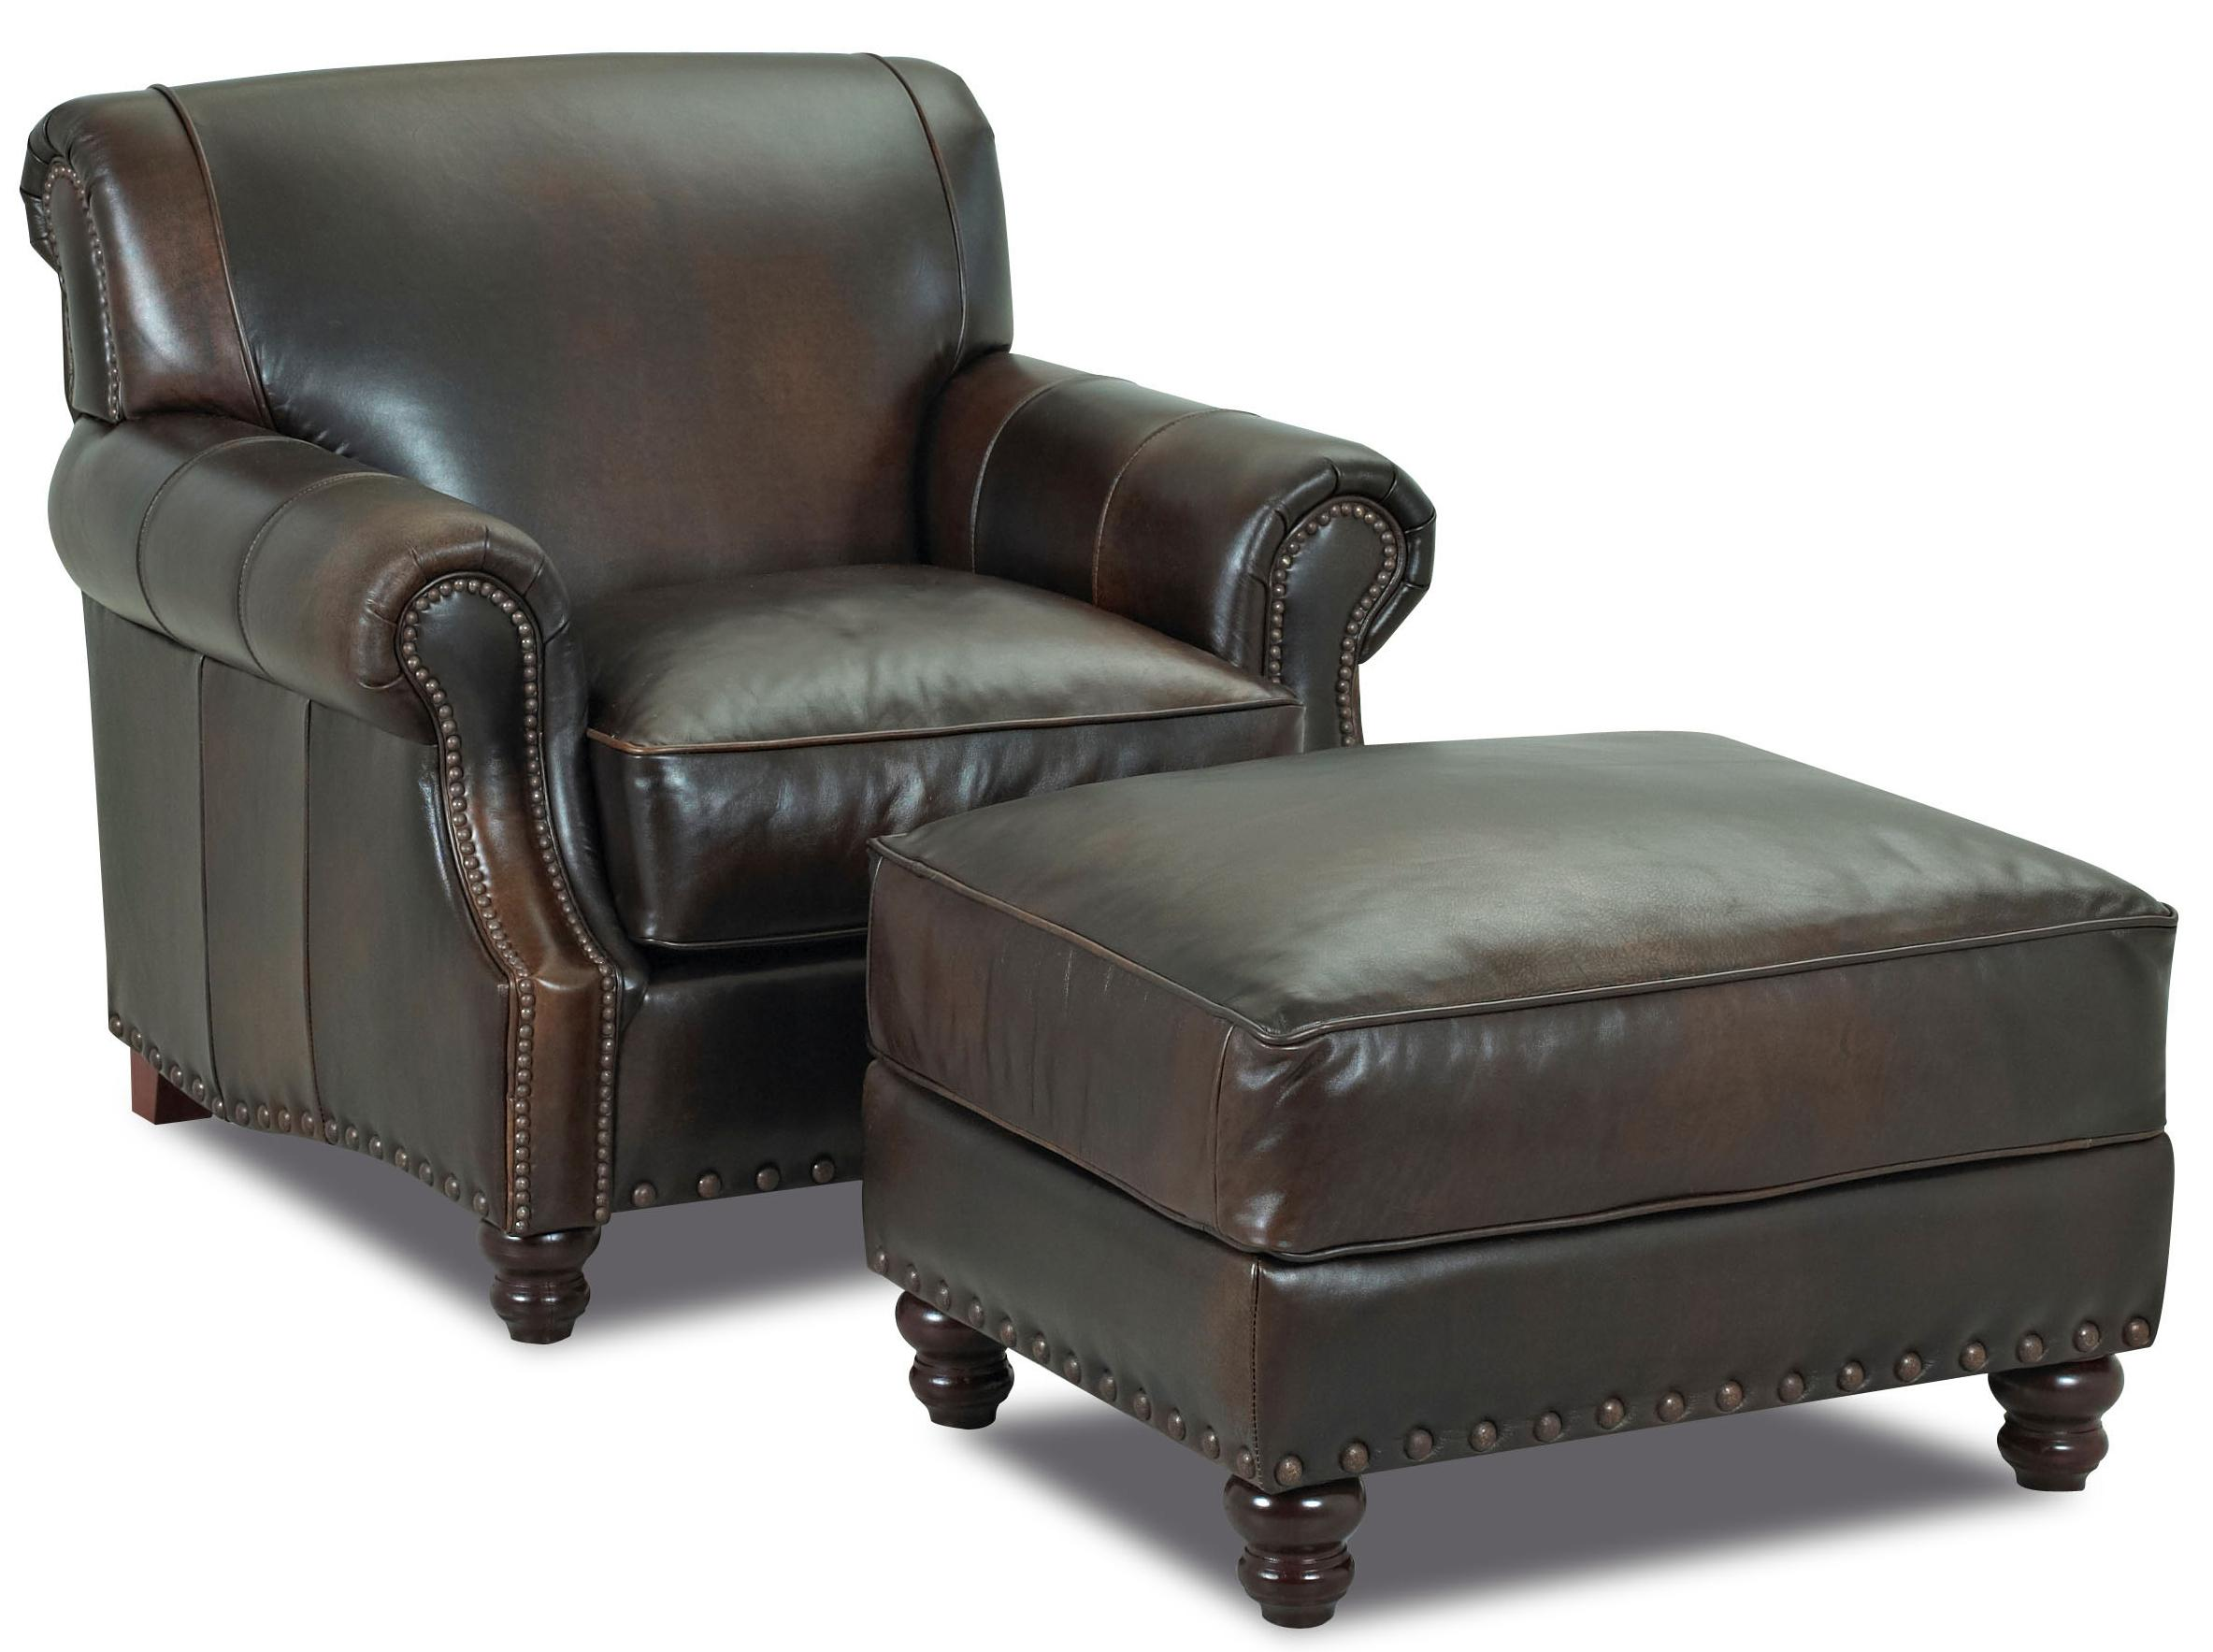 Traditional Leather Arm Chair & Ottoman Set